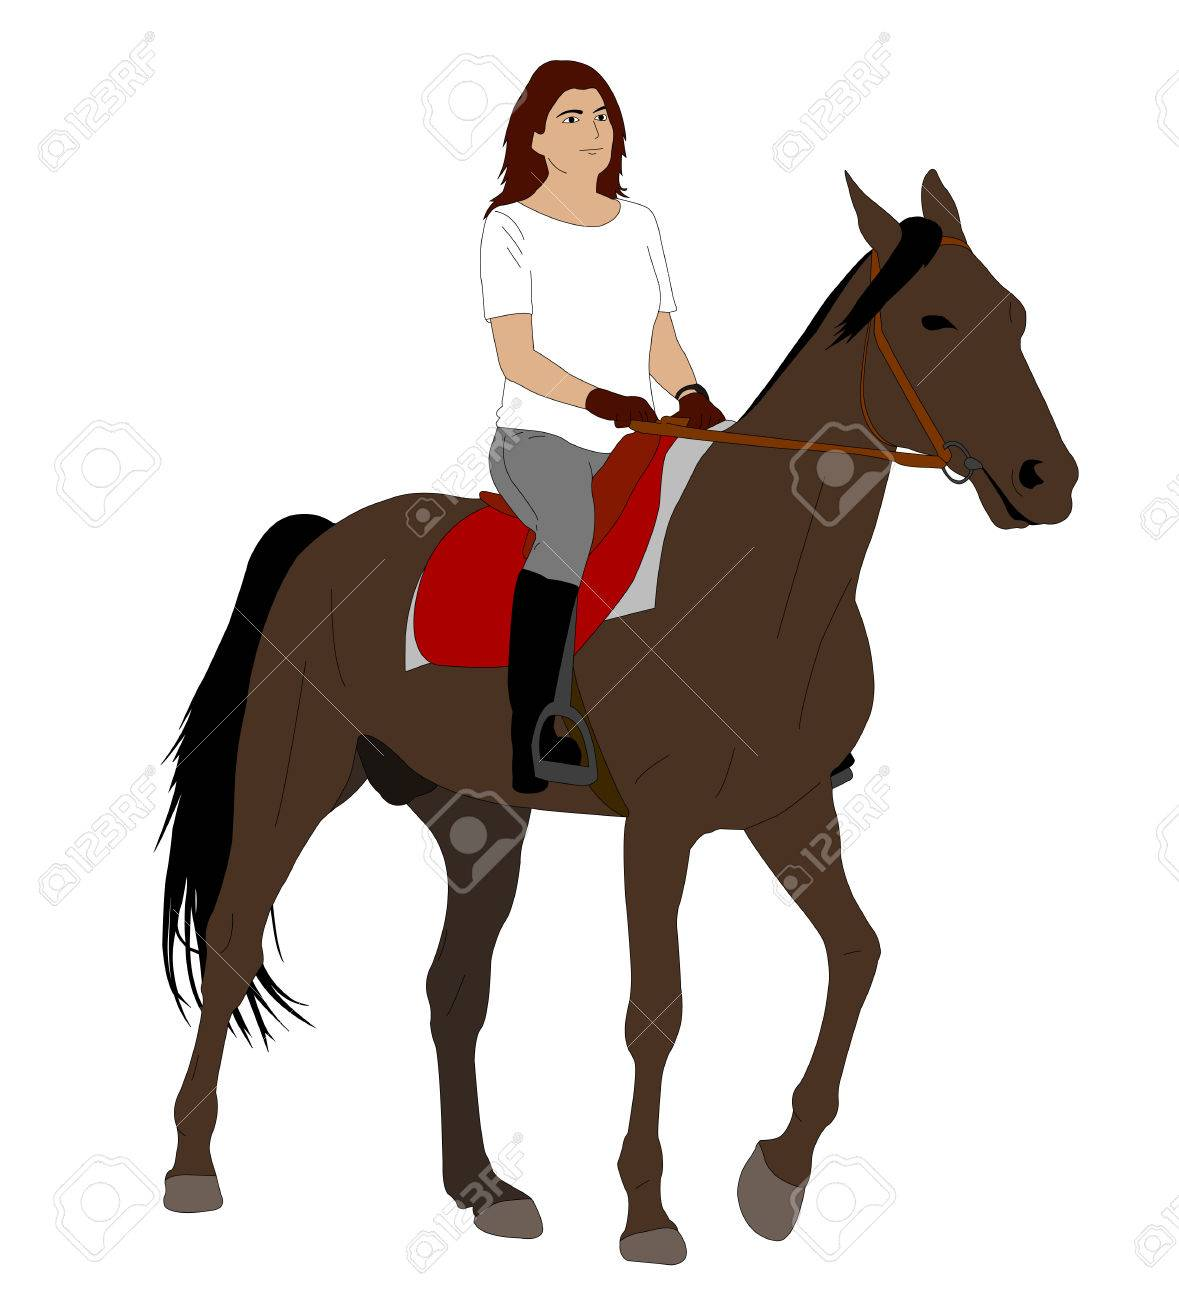 Woman Riding Horse 2 Vector Royalty Free Cliparts Vectors And Stock Illustration Image 66584260